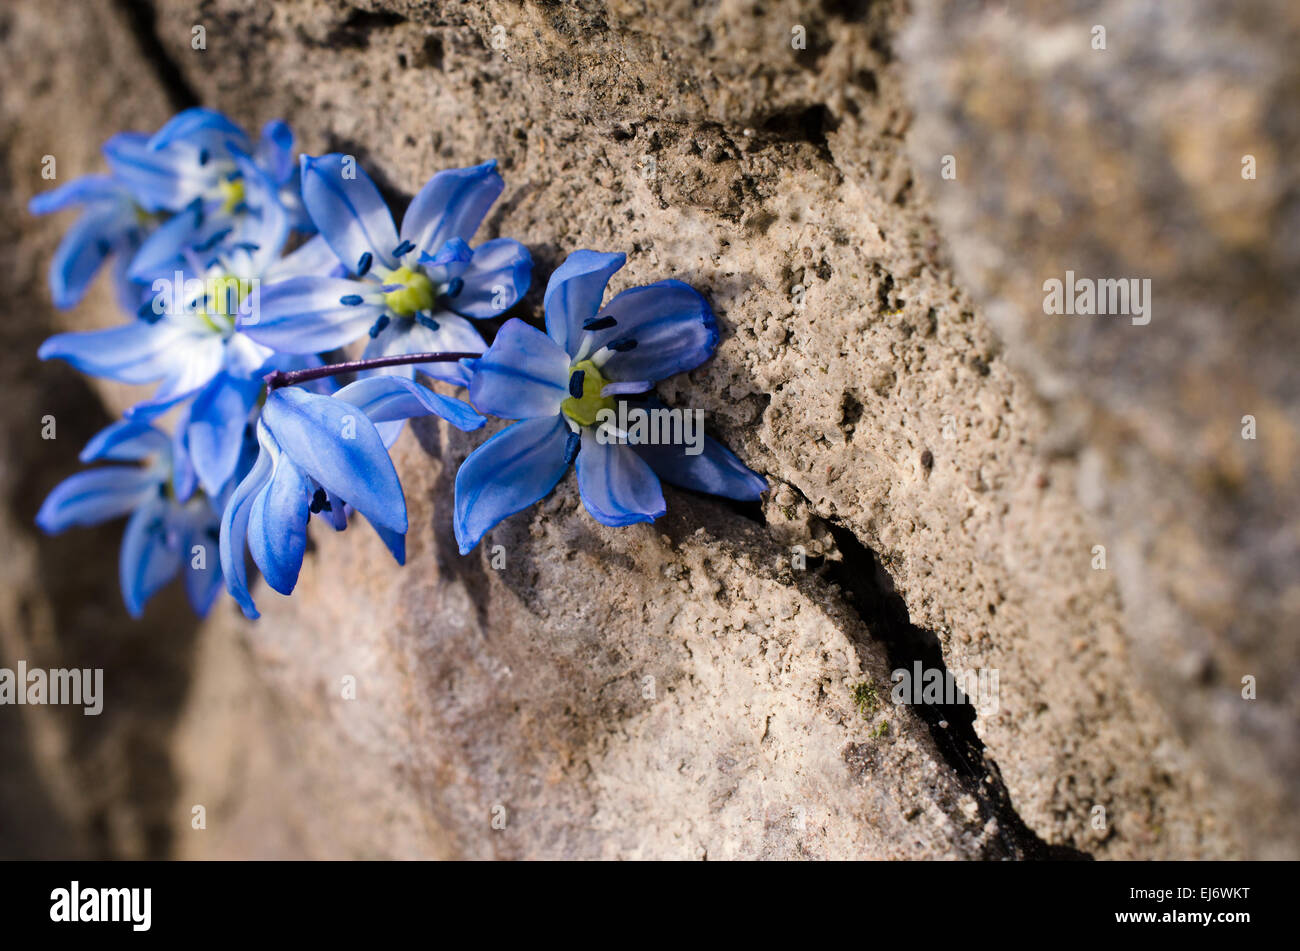 first bluebell flowers are in the crevice of a large stone. Selective focus - Stock Image